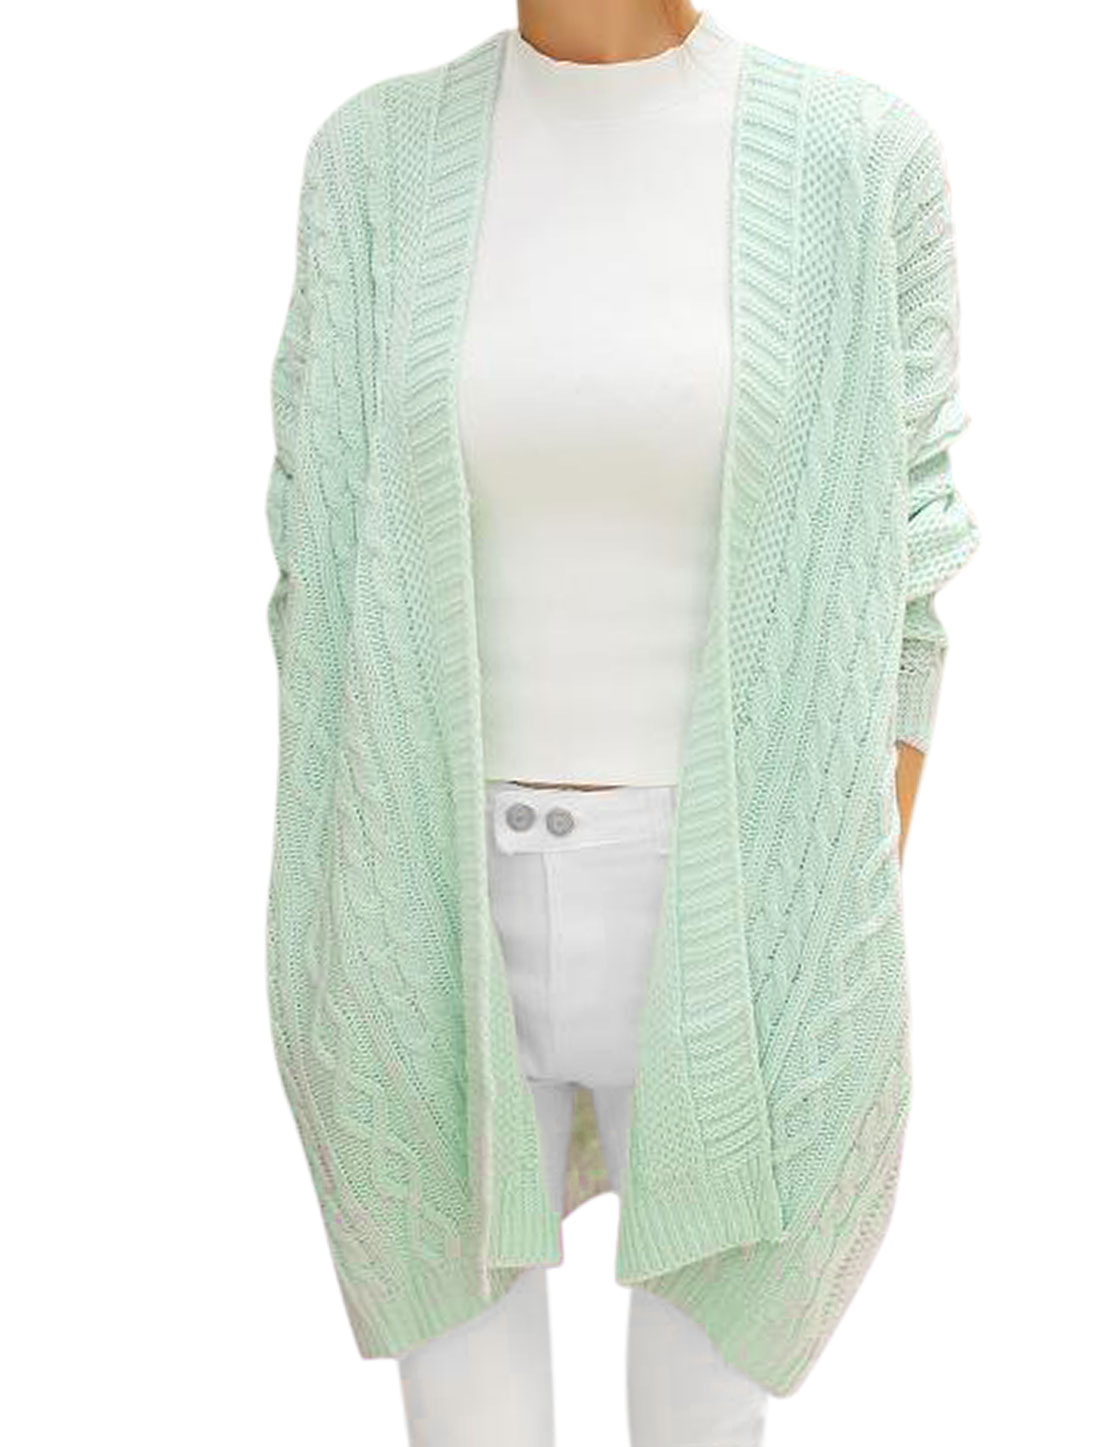 Lady Front Opening Two Sides Pocket Light Mint Tunic Cardigan Sweater M